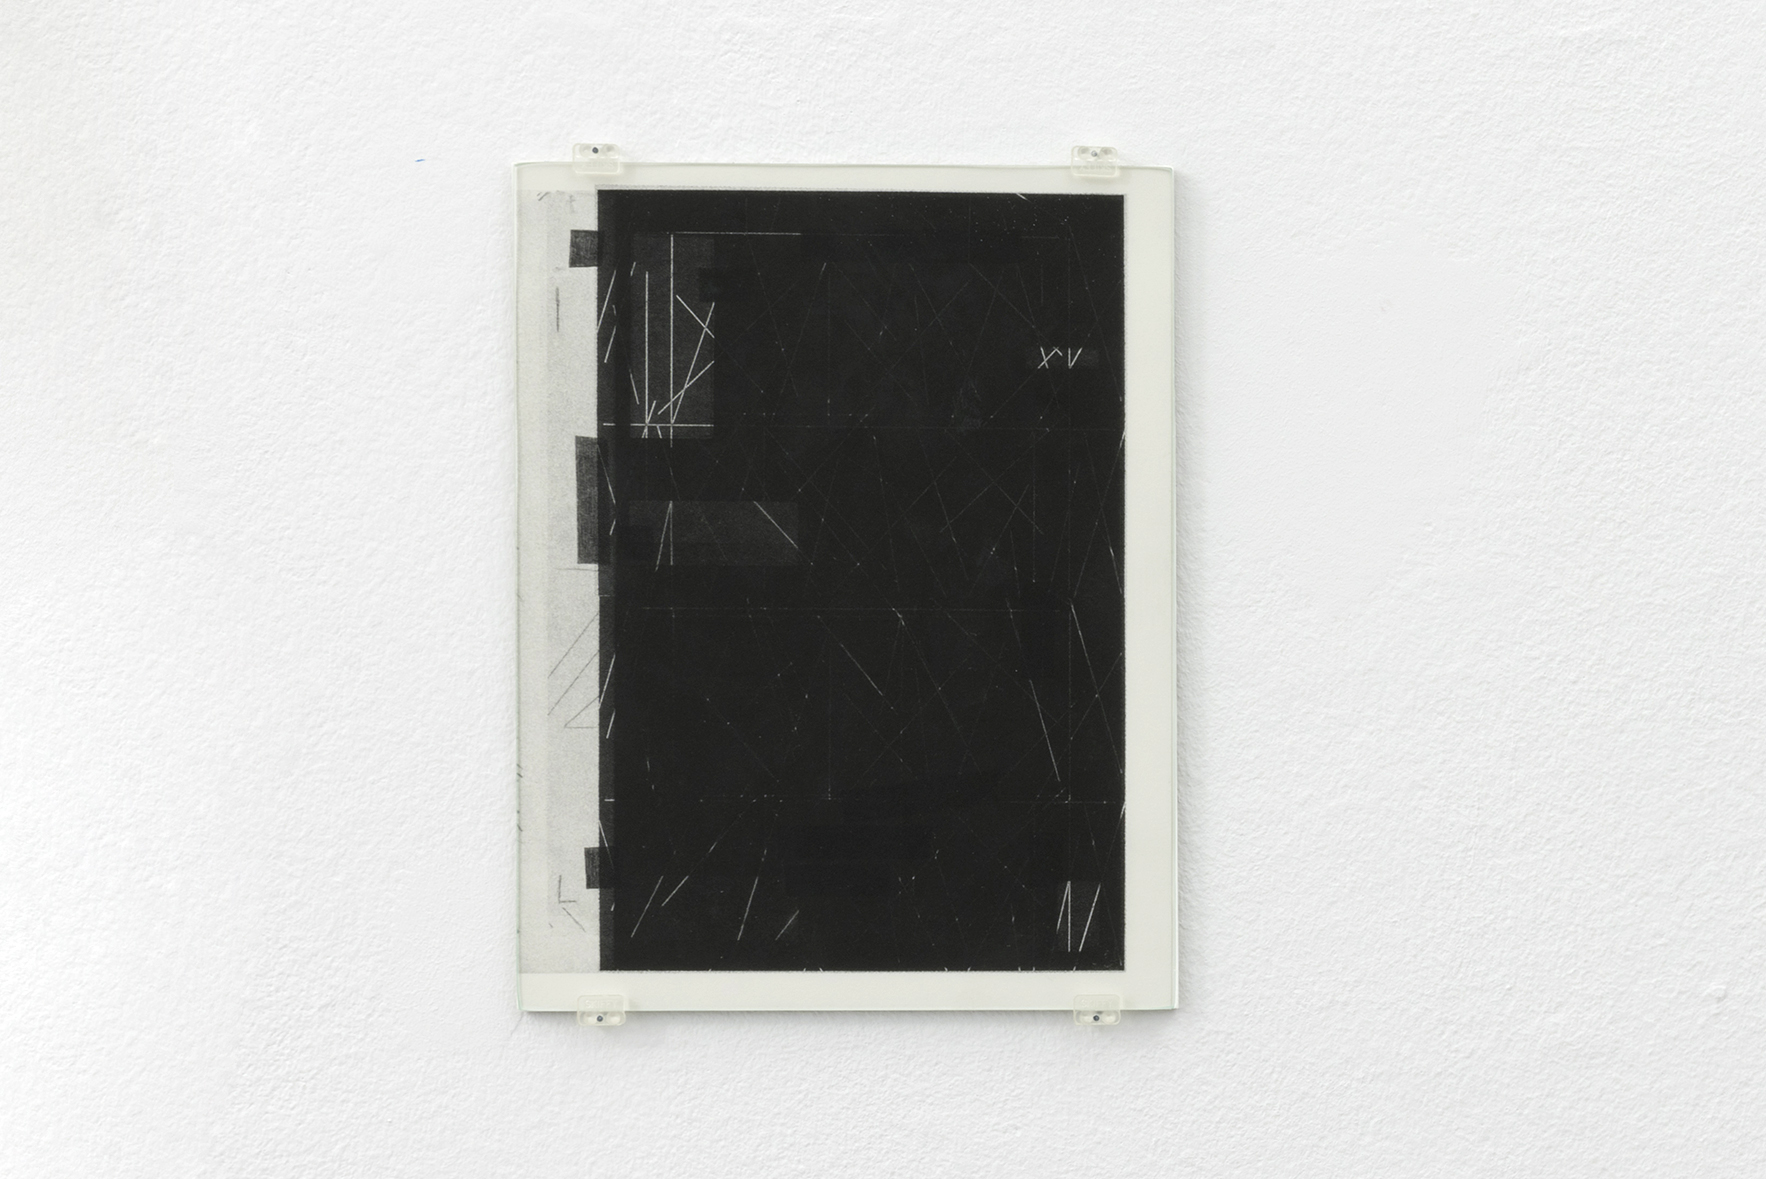 Zeichnungen 9, 2015 | A Drawing Placed Between Two Objects (with Mark Manders) | ProjecteSD